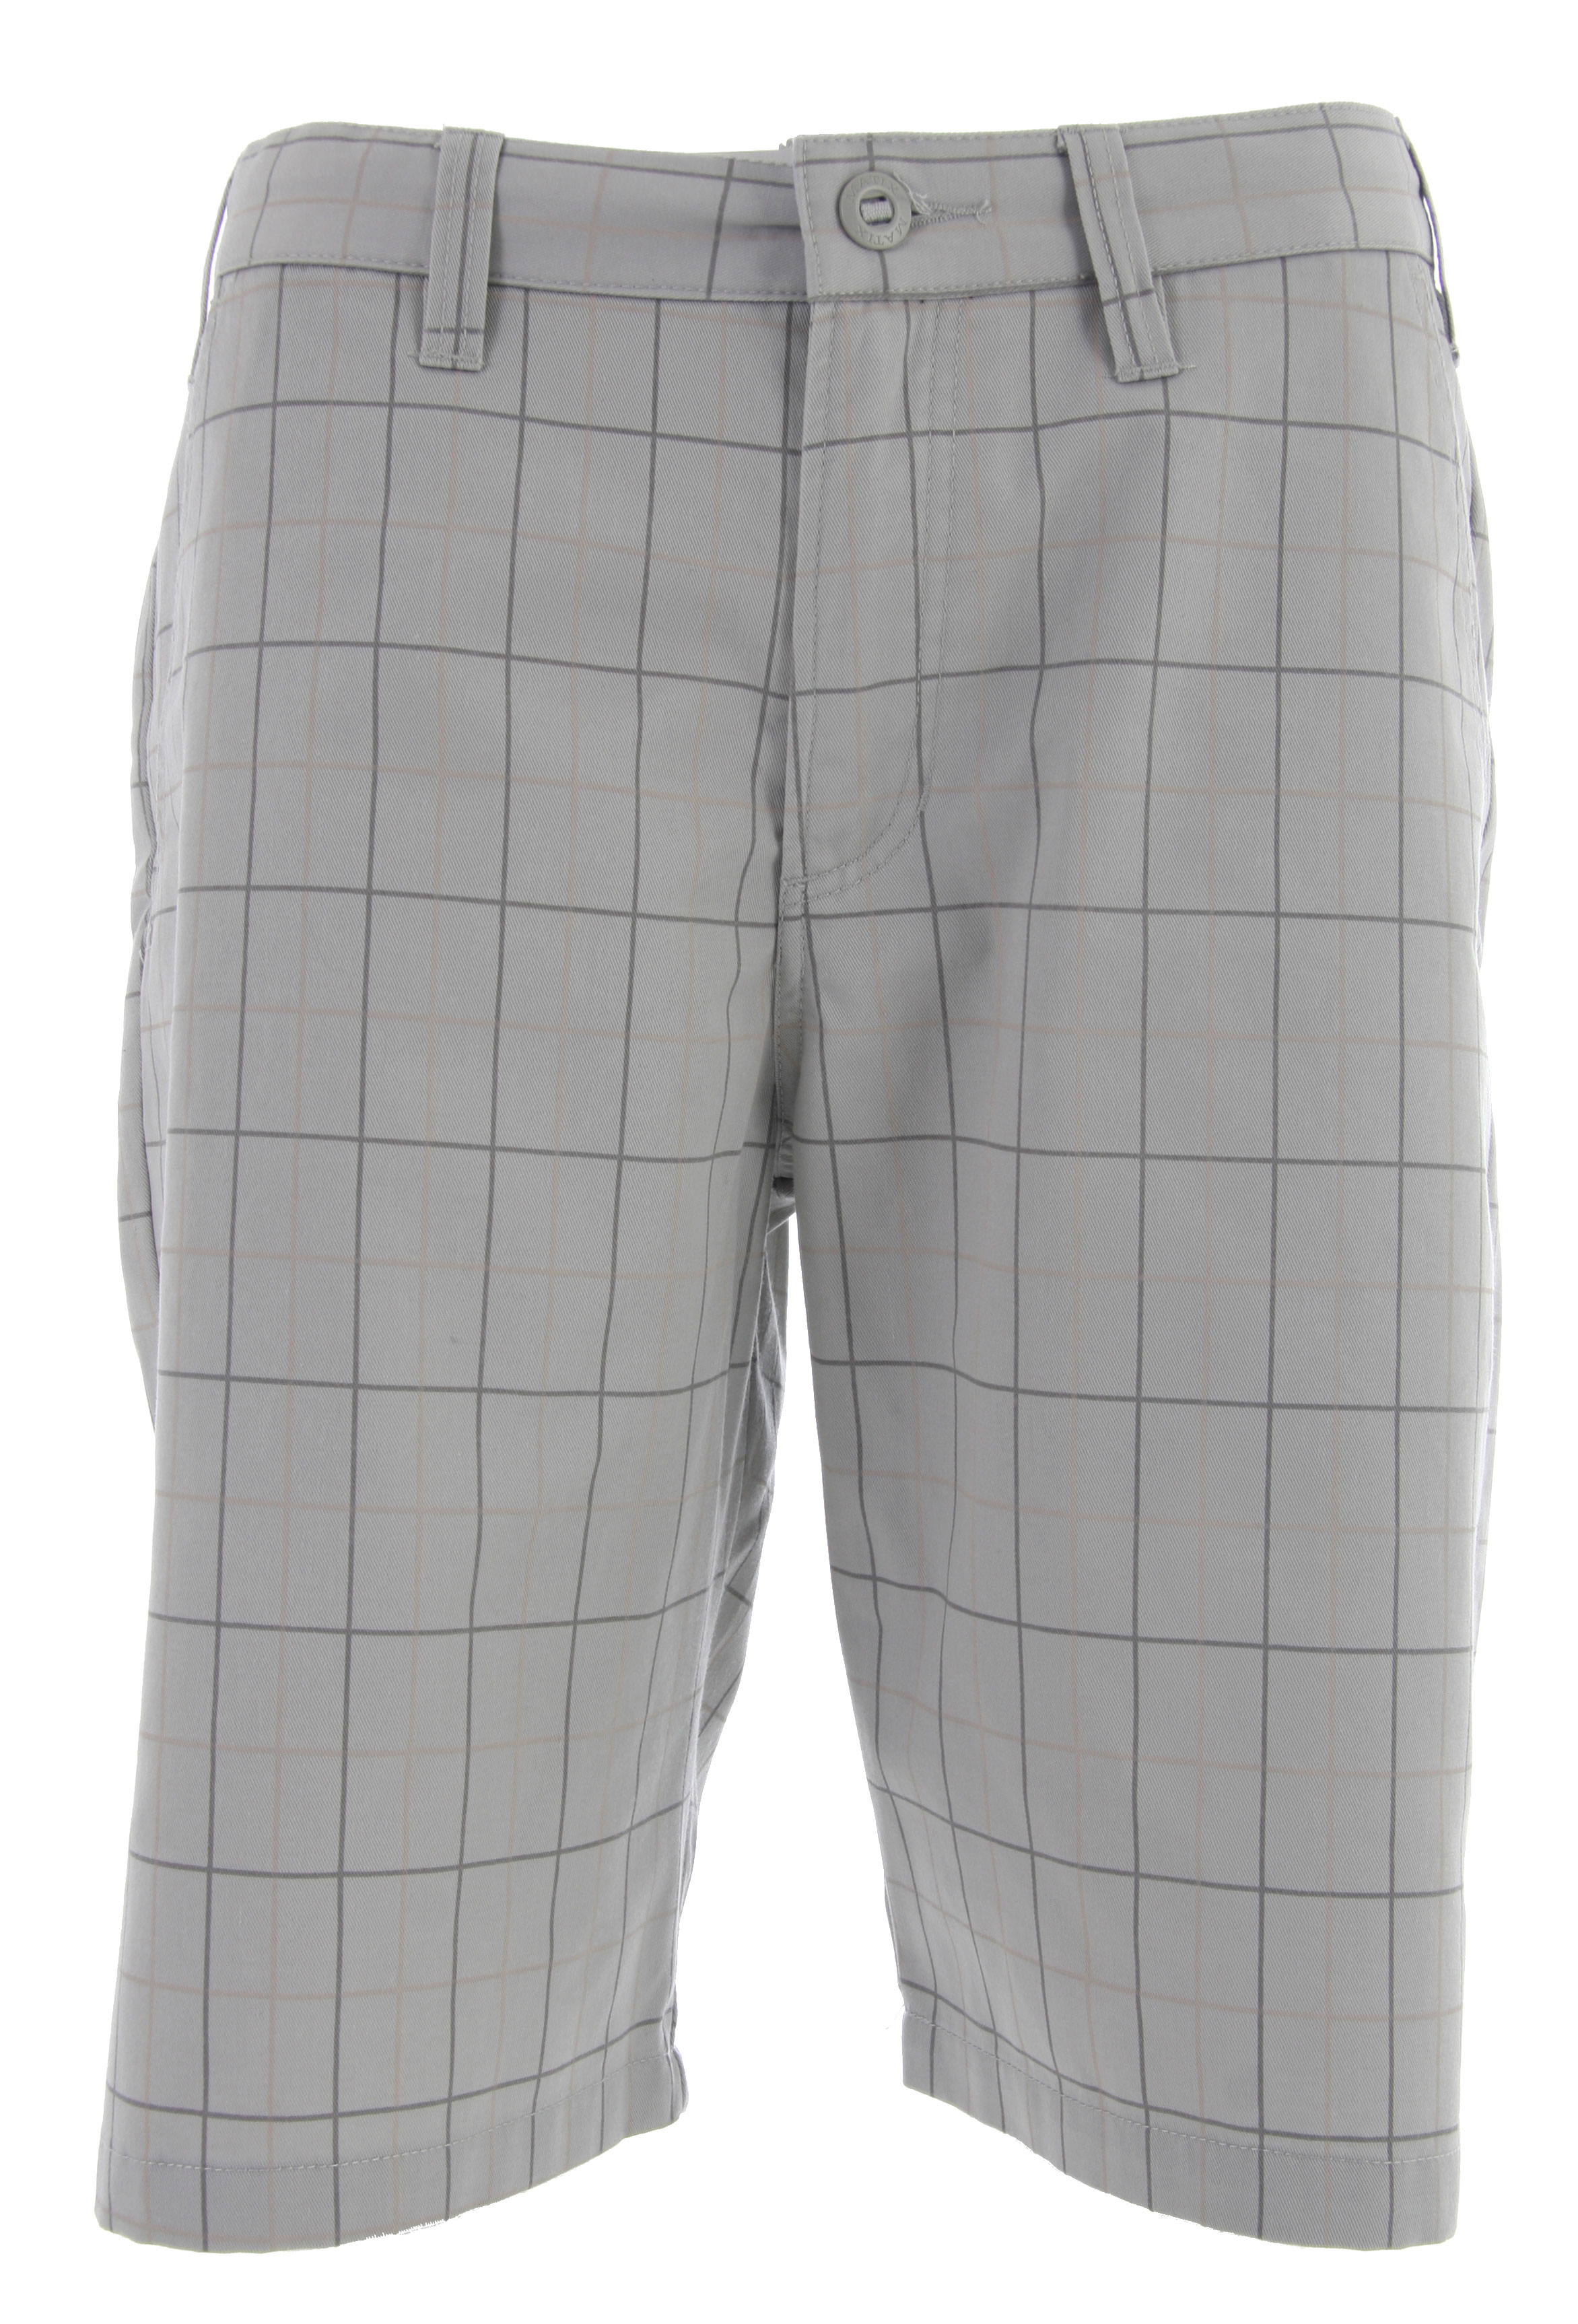 "Key Features of the Matix Welder 22"" Plaid Shorts: 60% Cotton/40% Poly Twill Plaid work/chino short with front/back pockets cellphone pocket plaid inside waistband hidden fortune cookie label inside waistband workwear labeling 22"" outseam for sz 32 - $28.95"